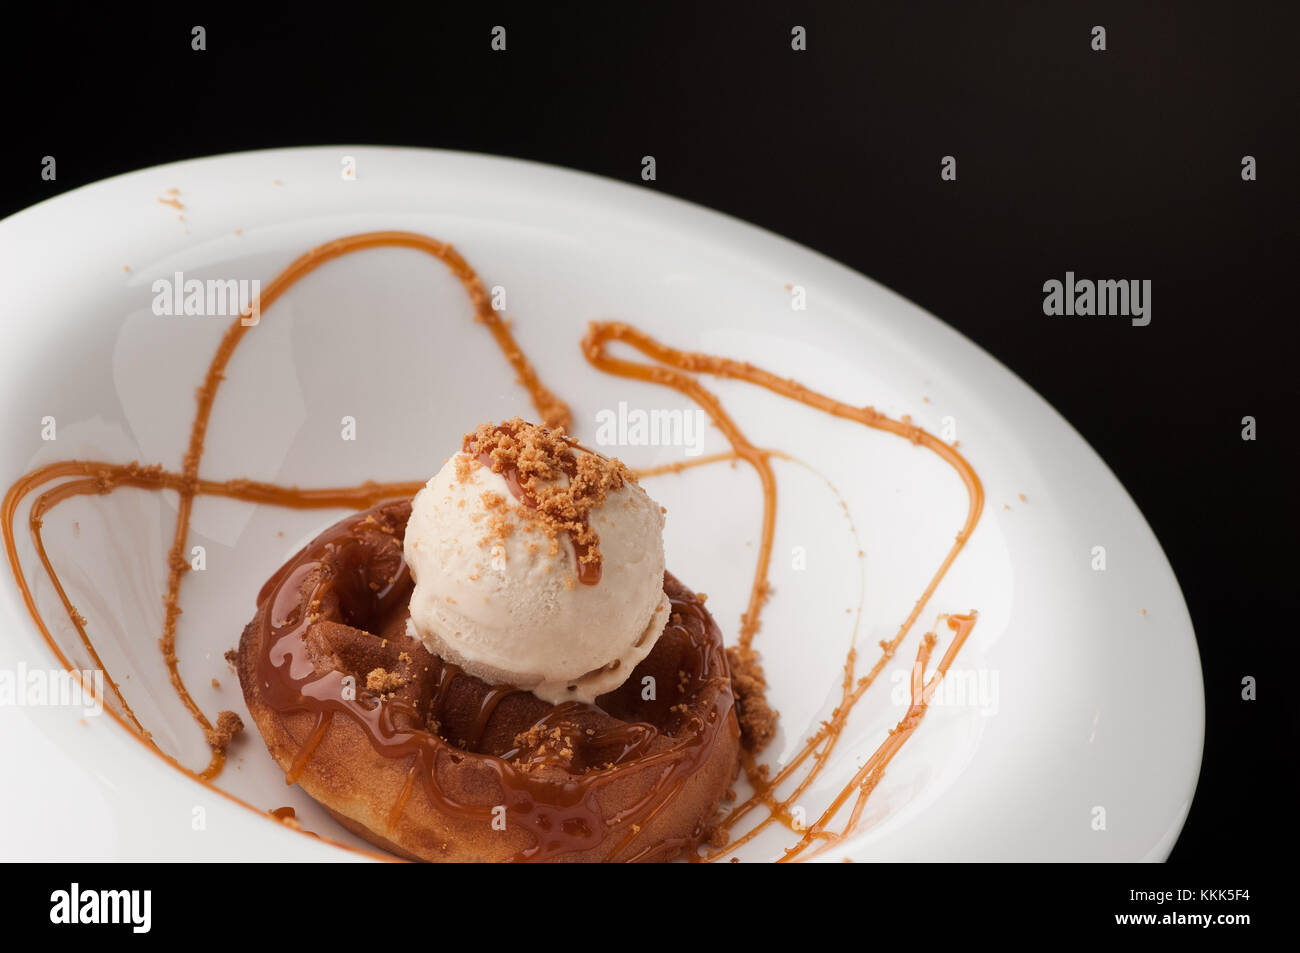 ice cream in a round white plate - Stock Image